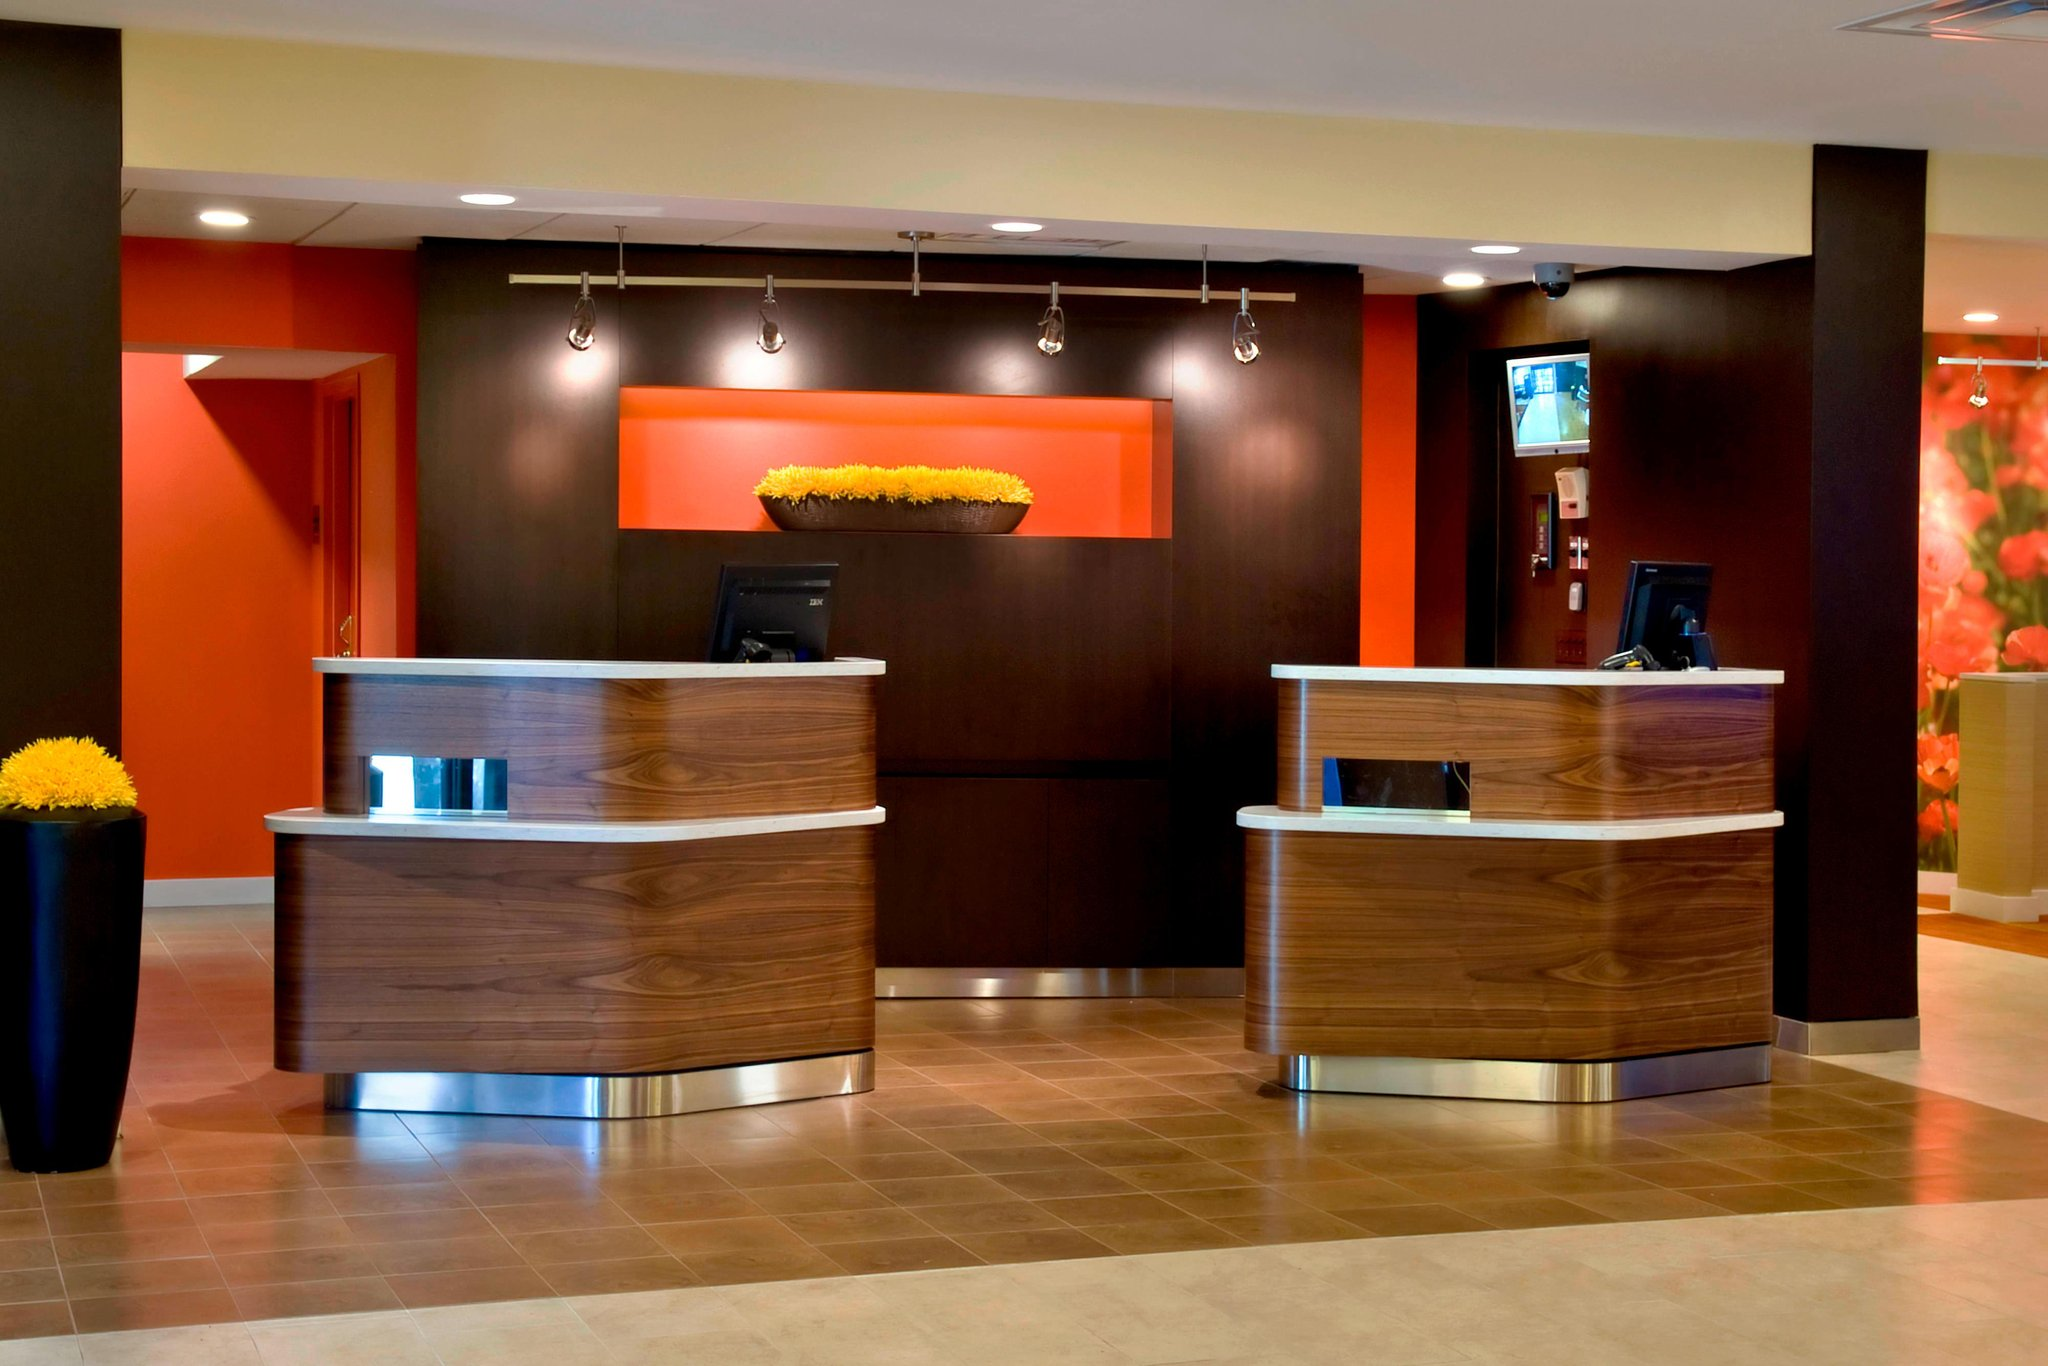 Courtyard by Marriott Lincroft